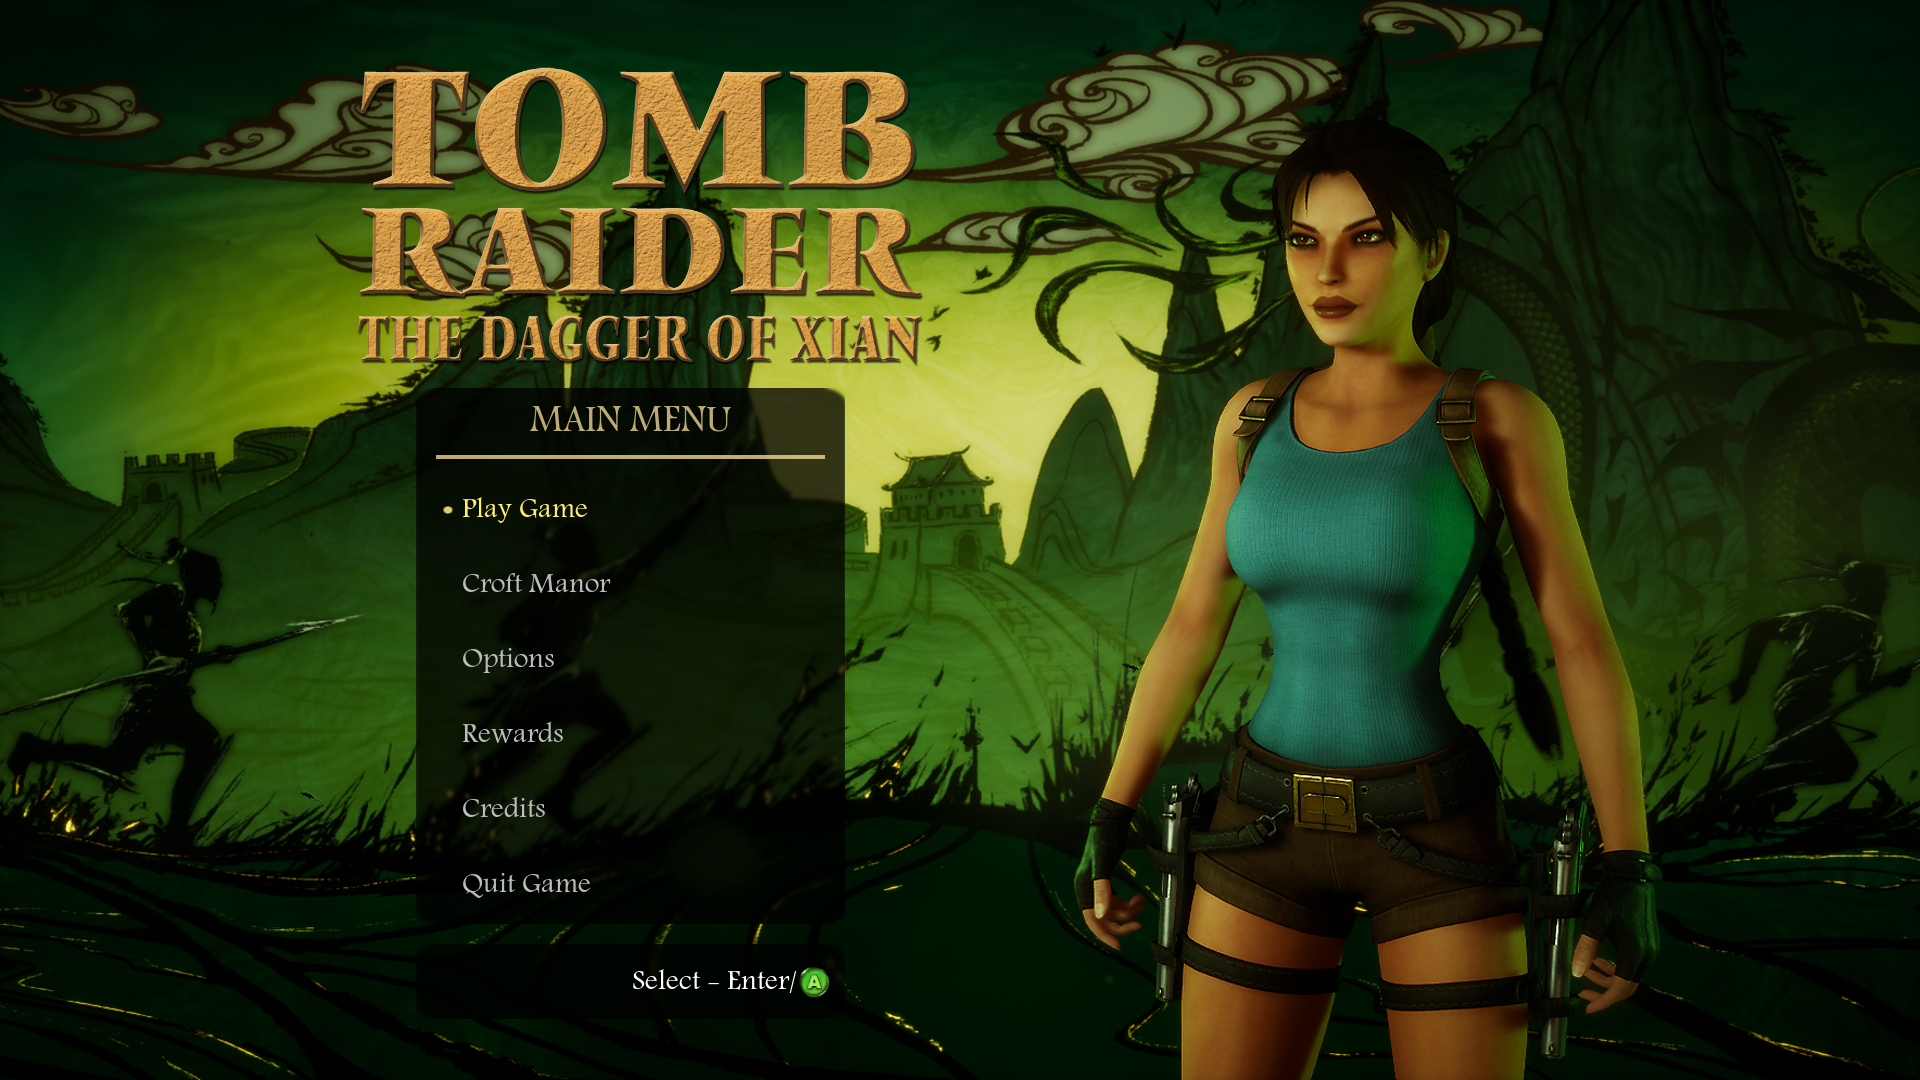 Tomb Raider II: The Dagger of Xian